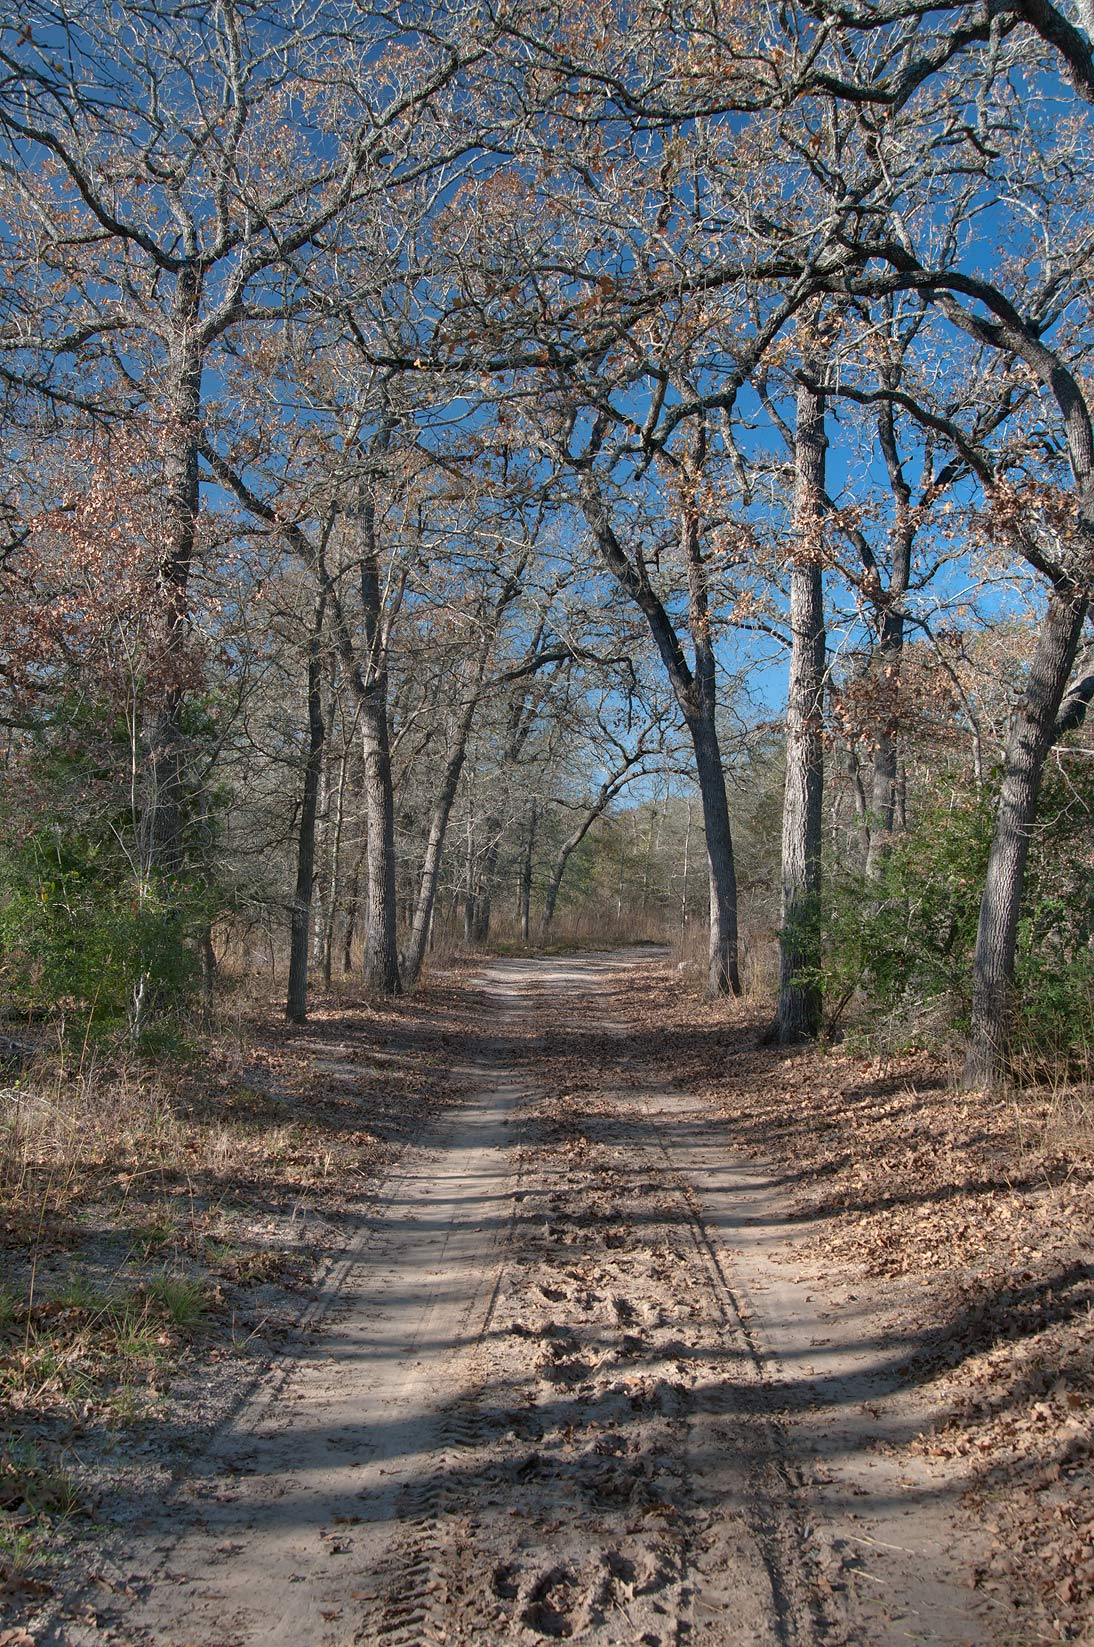 Road in Birch Creek Unit of Somerville Lake State Park. Texas